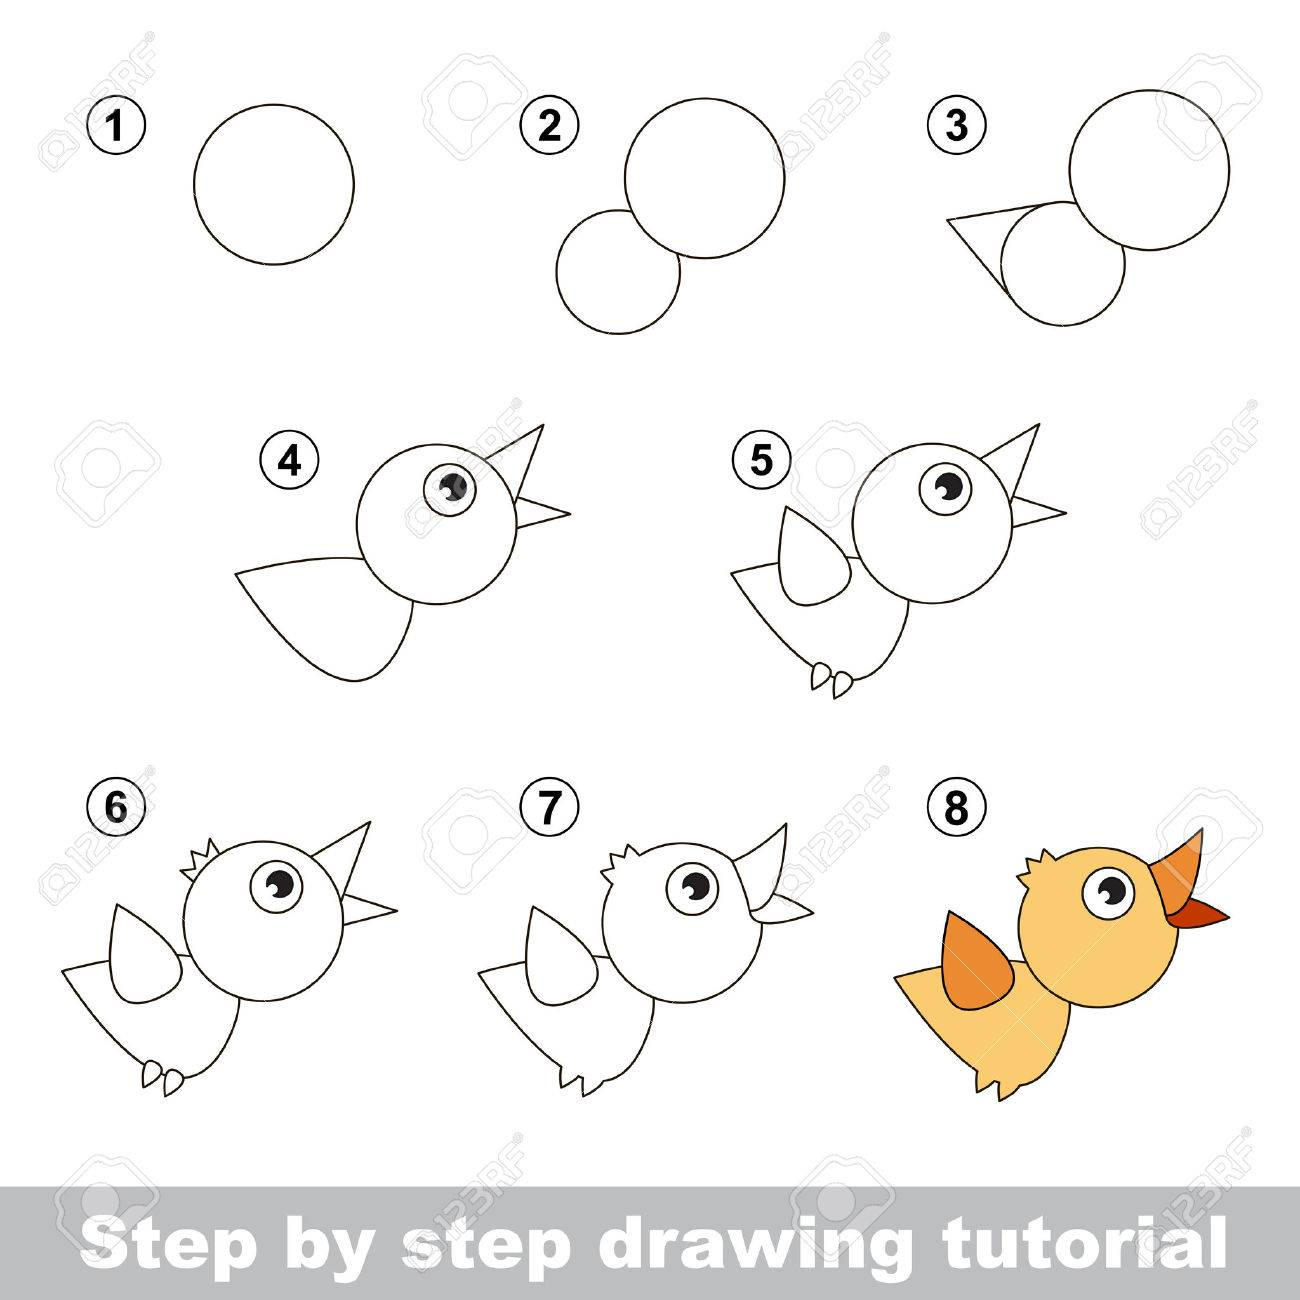 Uncategorized How To Draw A Bird Step By Step For Kids step by drawing tutorial visual game for kids how to draw a bird